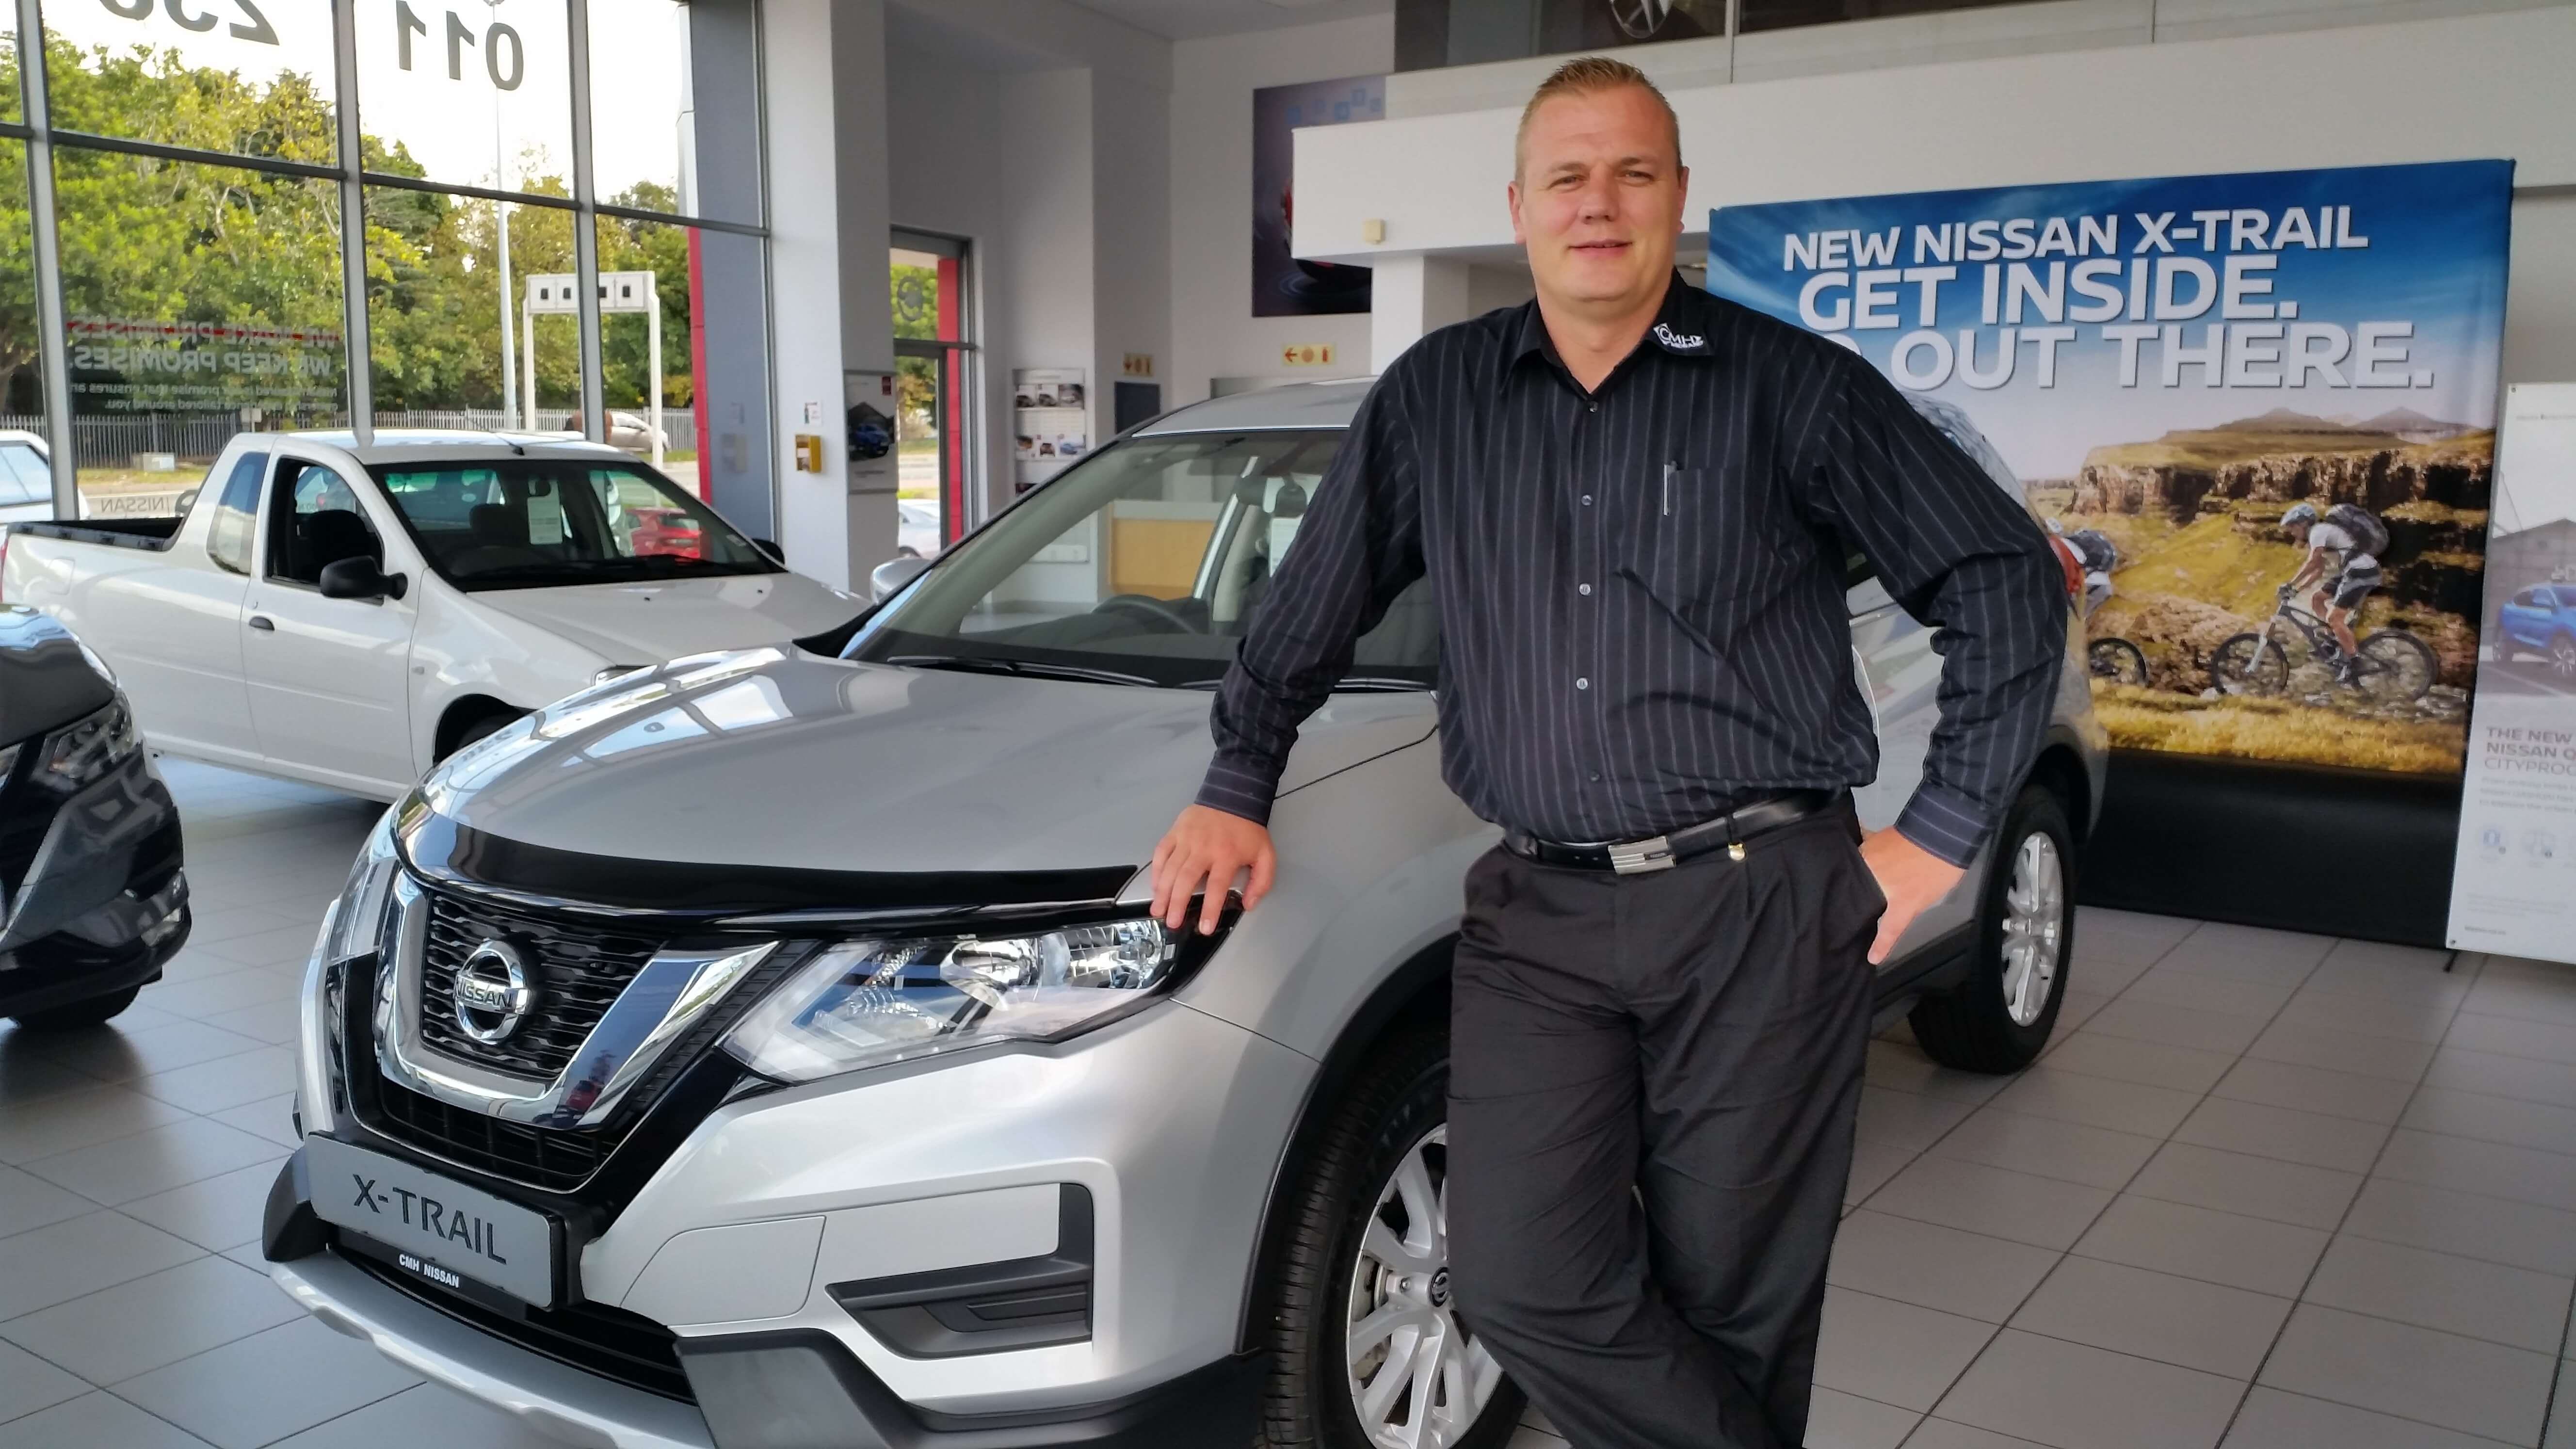 lombard has premium experience cmh welcomes midrand martin nissan motor industry brought dealership md new blog to sales and our expertise manager last brands years his spent dealers with the in mostly